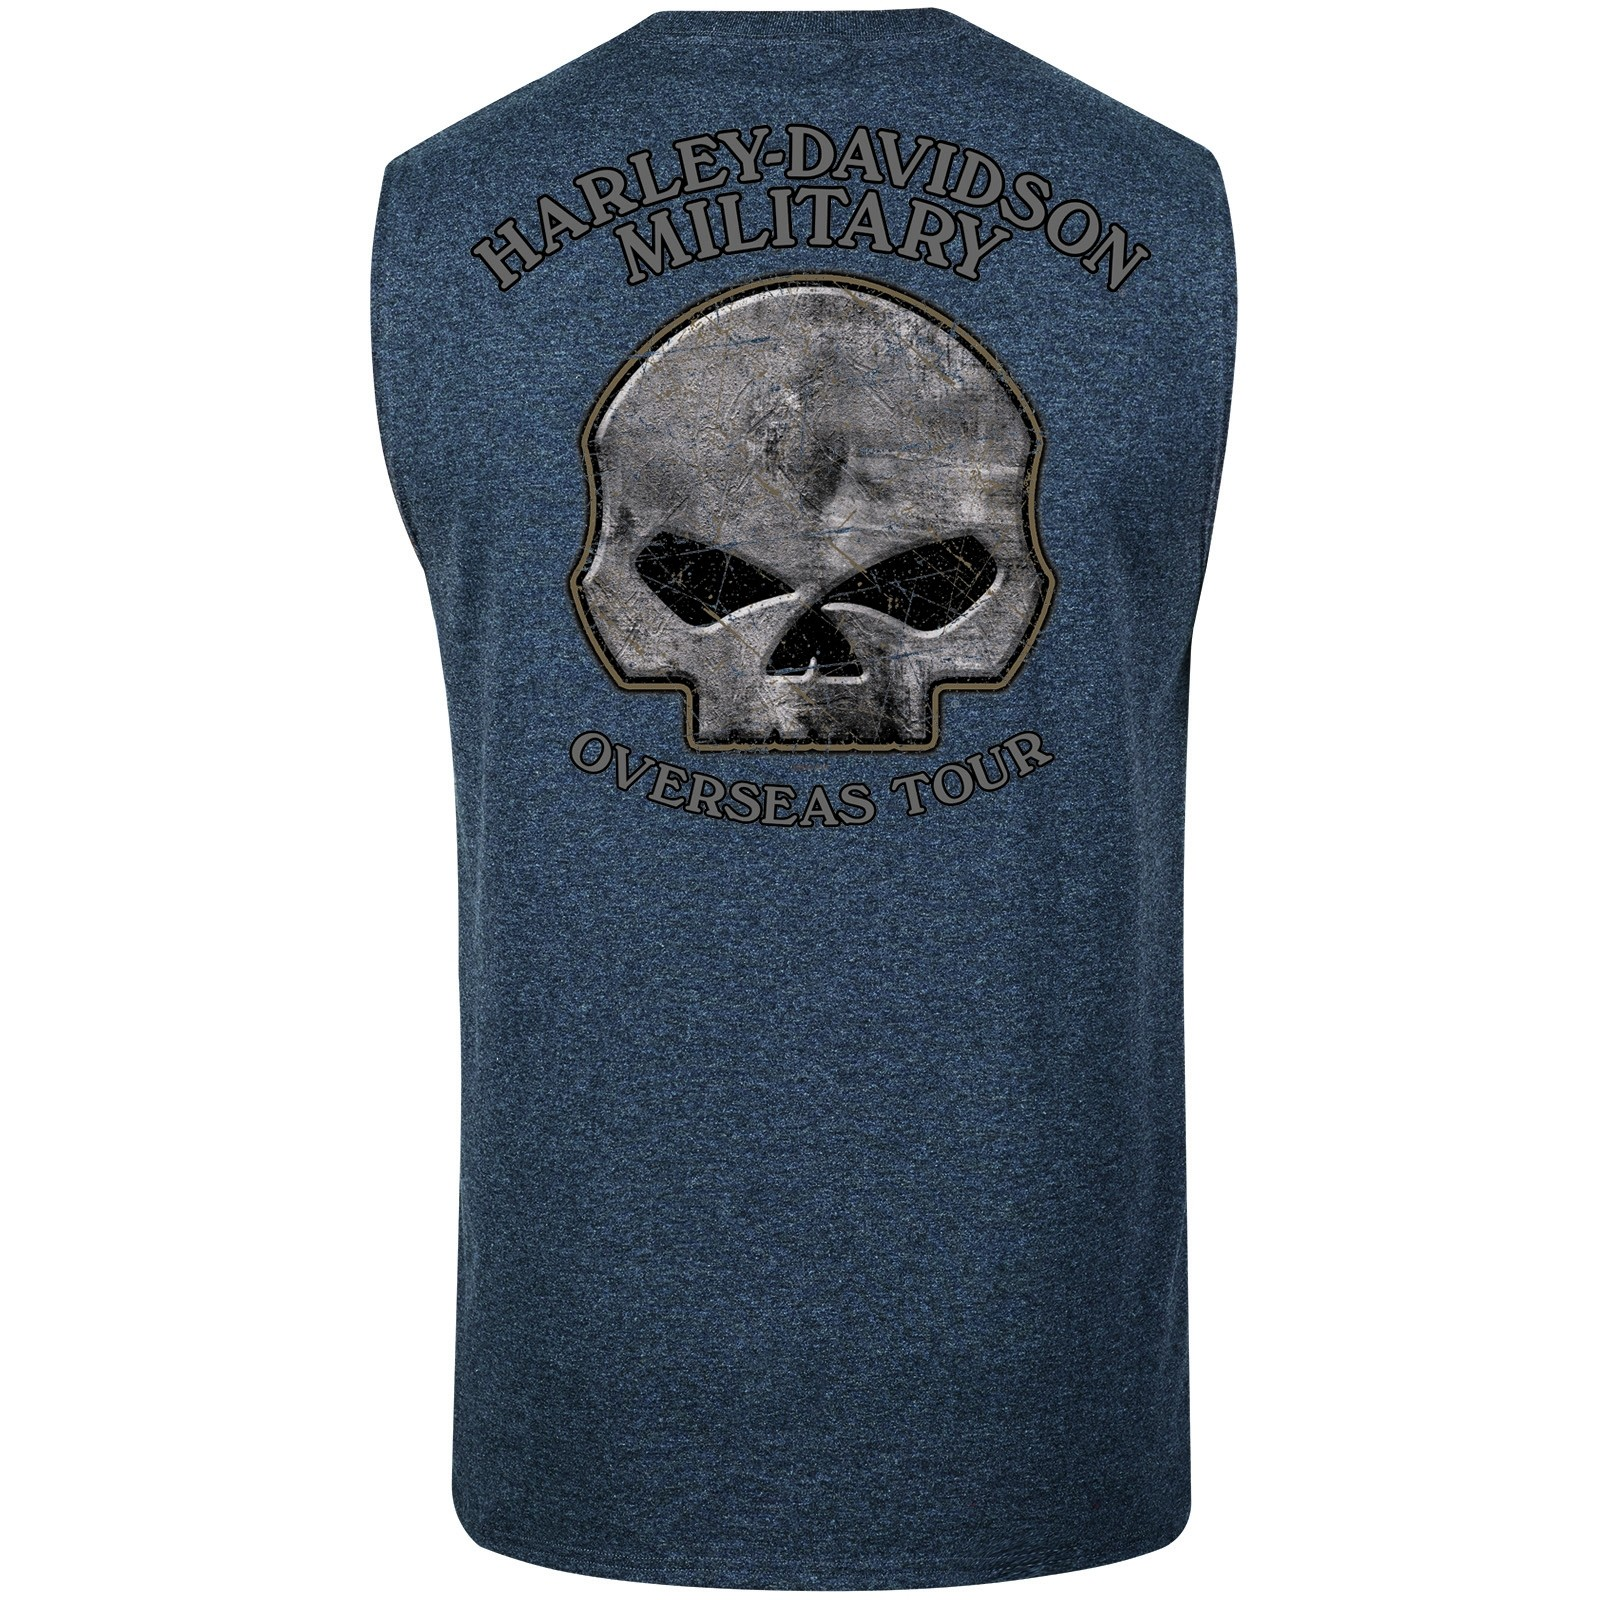 Harley-Davidson Military One a-Kind Graphic T-Shirt Overseas TourRide Fre